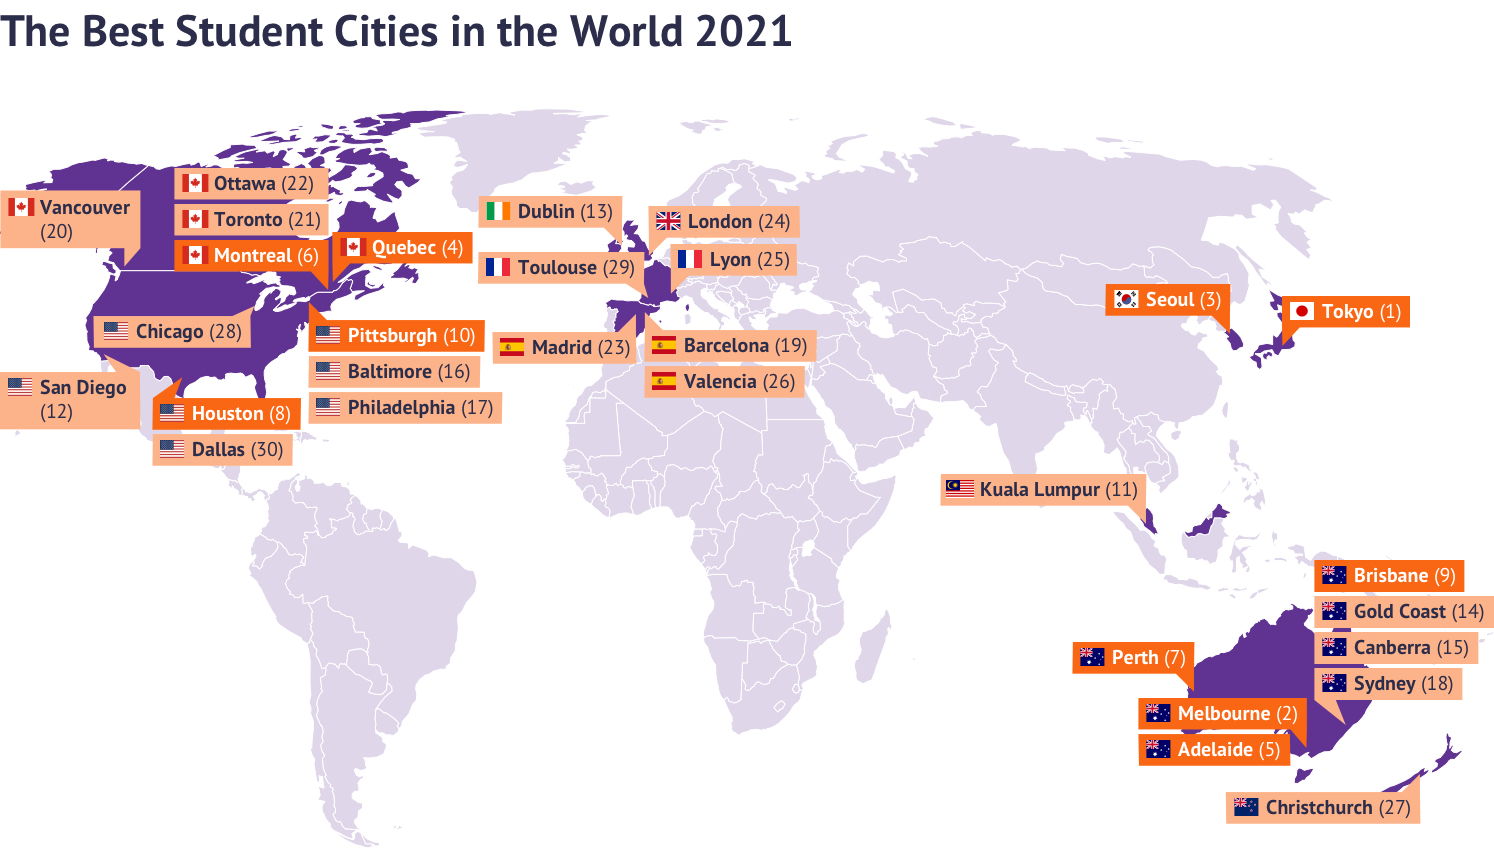 Map of the best student cities in the world